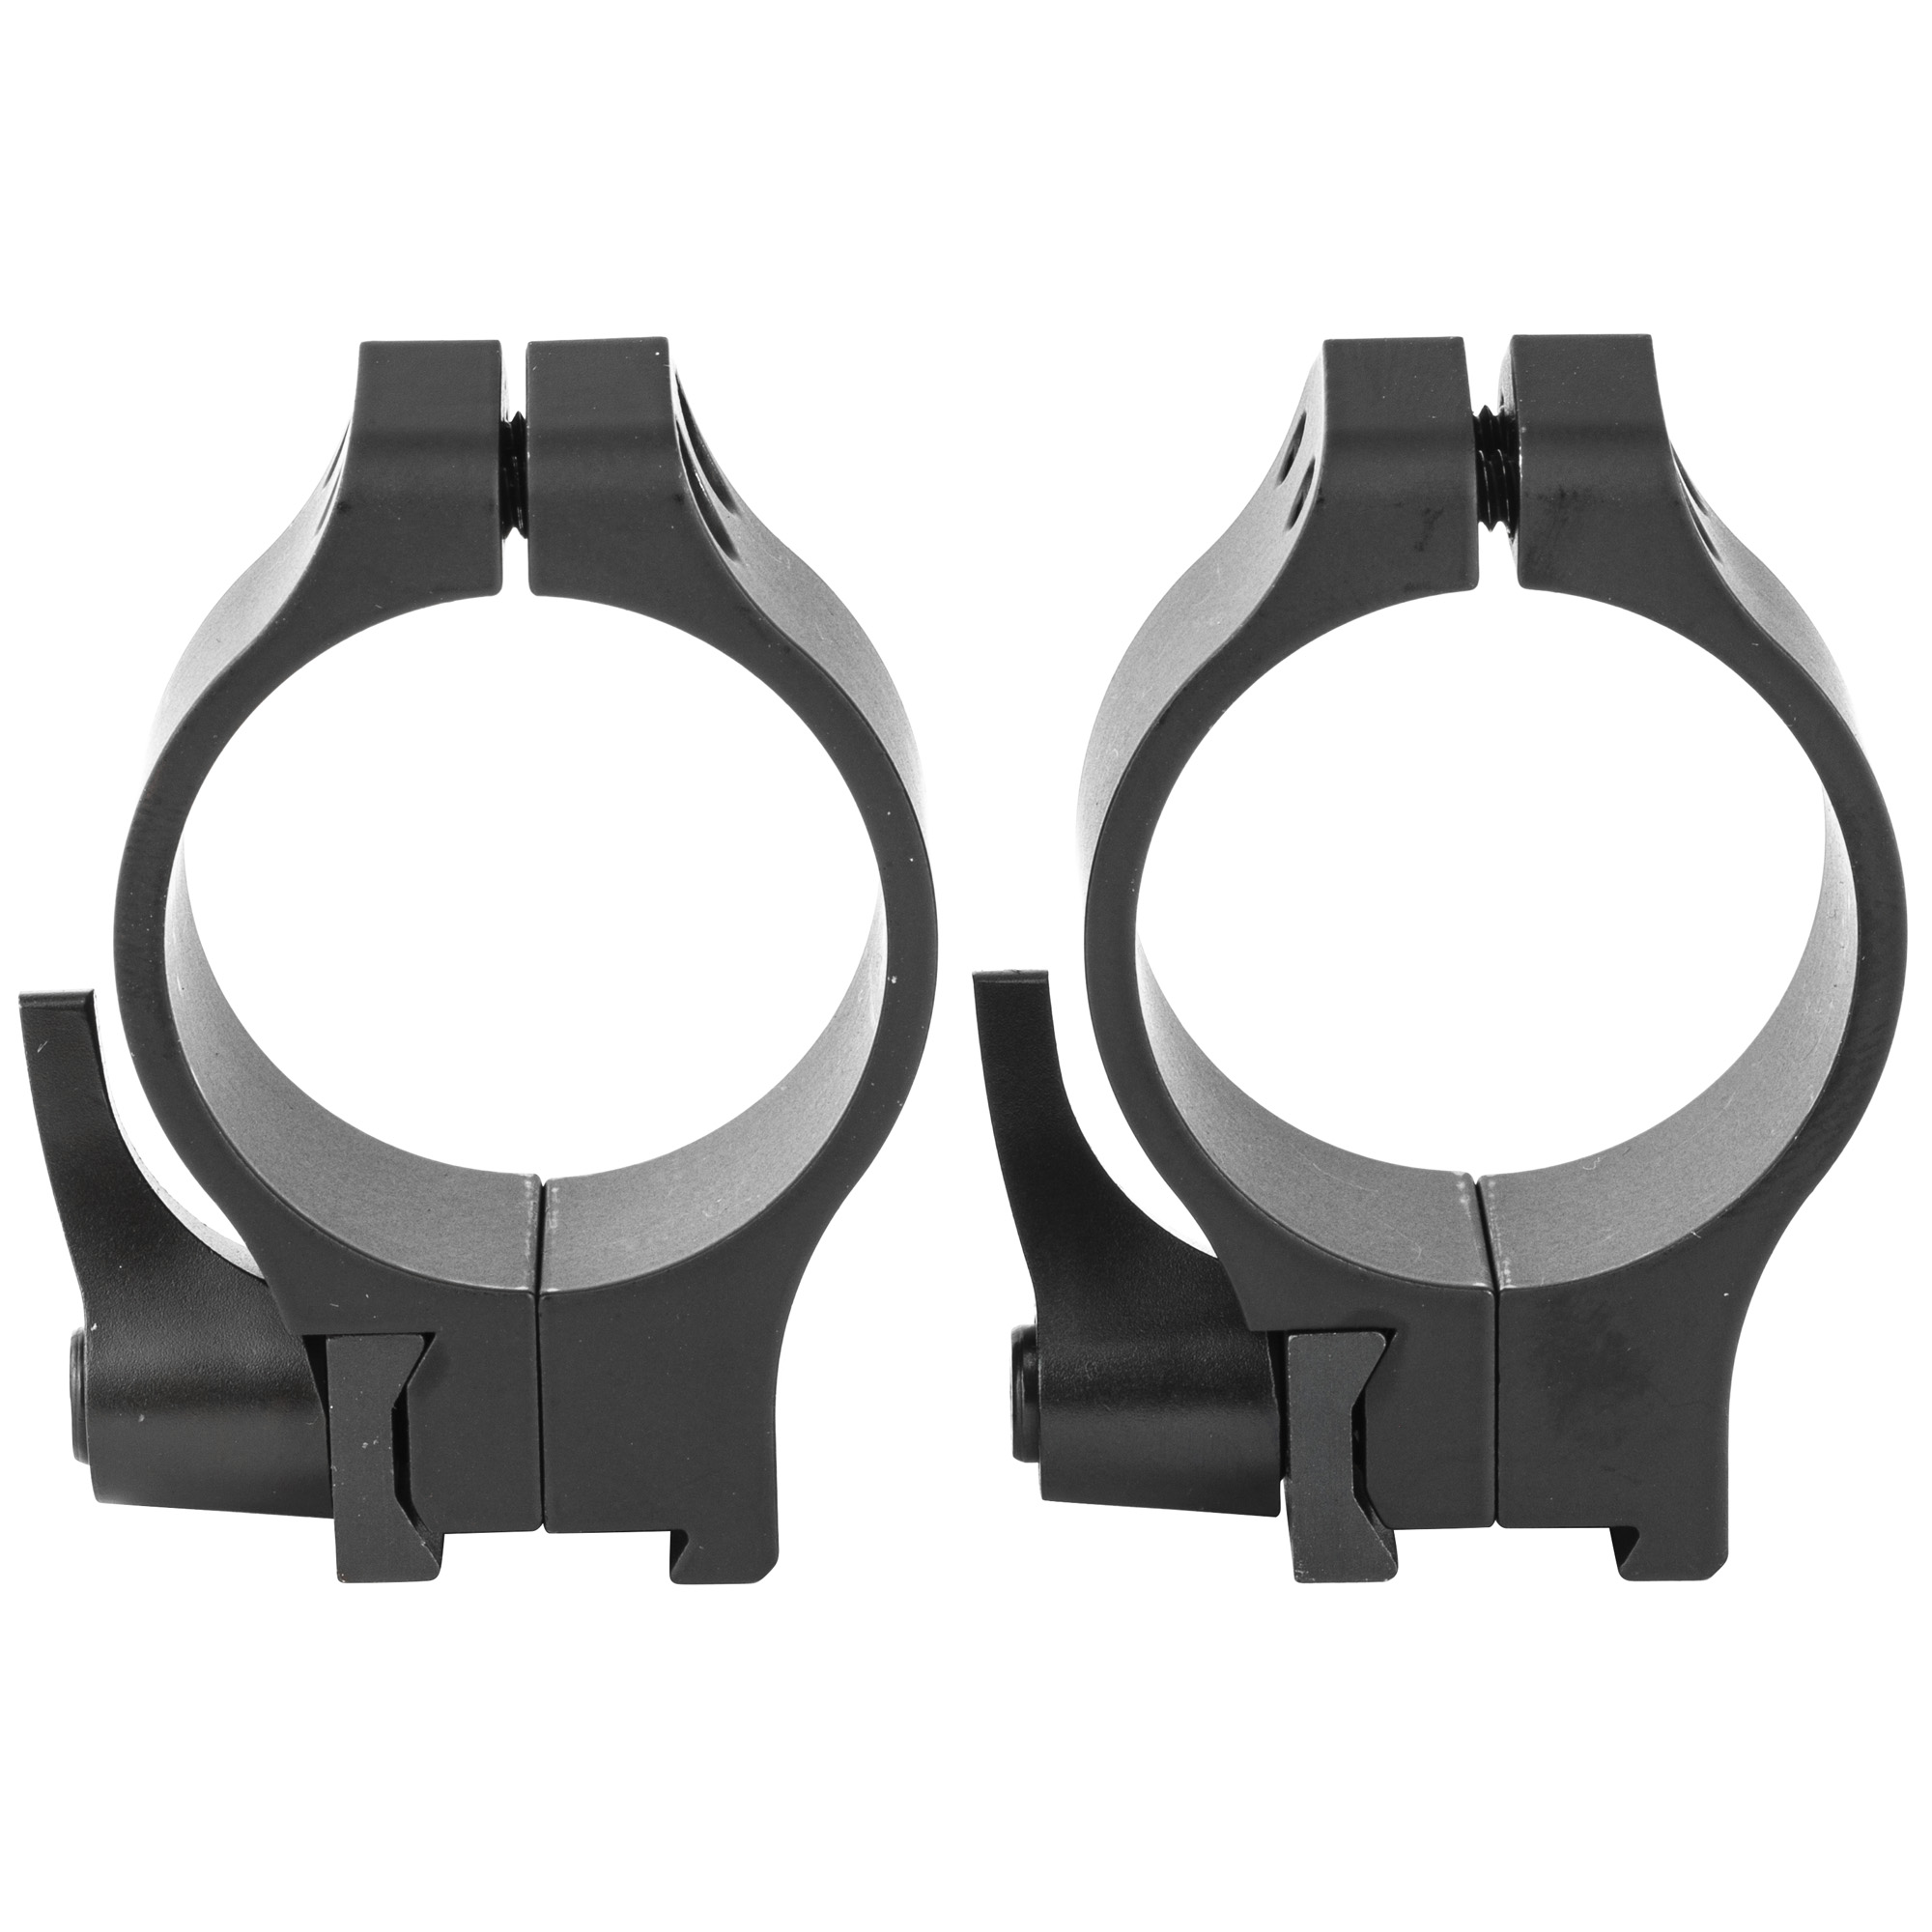 """The Maxima QD Rings sport the unique Warne indexable lever system which allows the user to remove the optics from the rifle then reattach it without the loss of zero"""" as well as allowing the location of the lever to be indexed once the rings are affixed to the bases. After the levers are tightened"""" simply pull out on the lever"""" turn it to the desired location then let it snap into place. When used on the all steel Warne Maxima Bases"""" Warne guarantees return to zero accuracy when removing and reattaching the optic. Also unique to the industry"""" the Maxima QD Rings have a square stainless steel recoil control key. This ensures a positive recoil engagement surface across the entire face of the recoil slot in the base. The recoil control key guarantees that the rings will not shift or move under fierce recoil and also protects against peening or swaging when mounted on aluminum bases."""